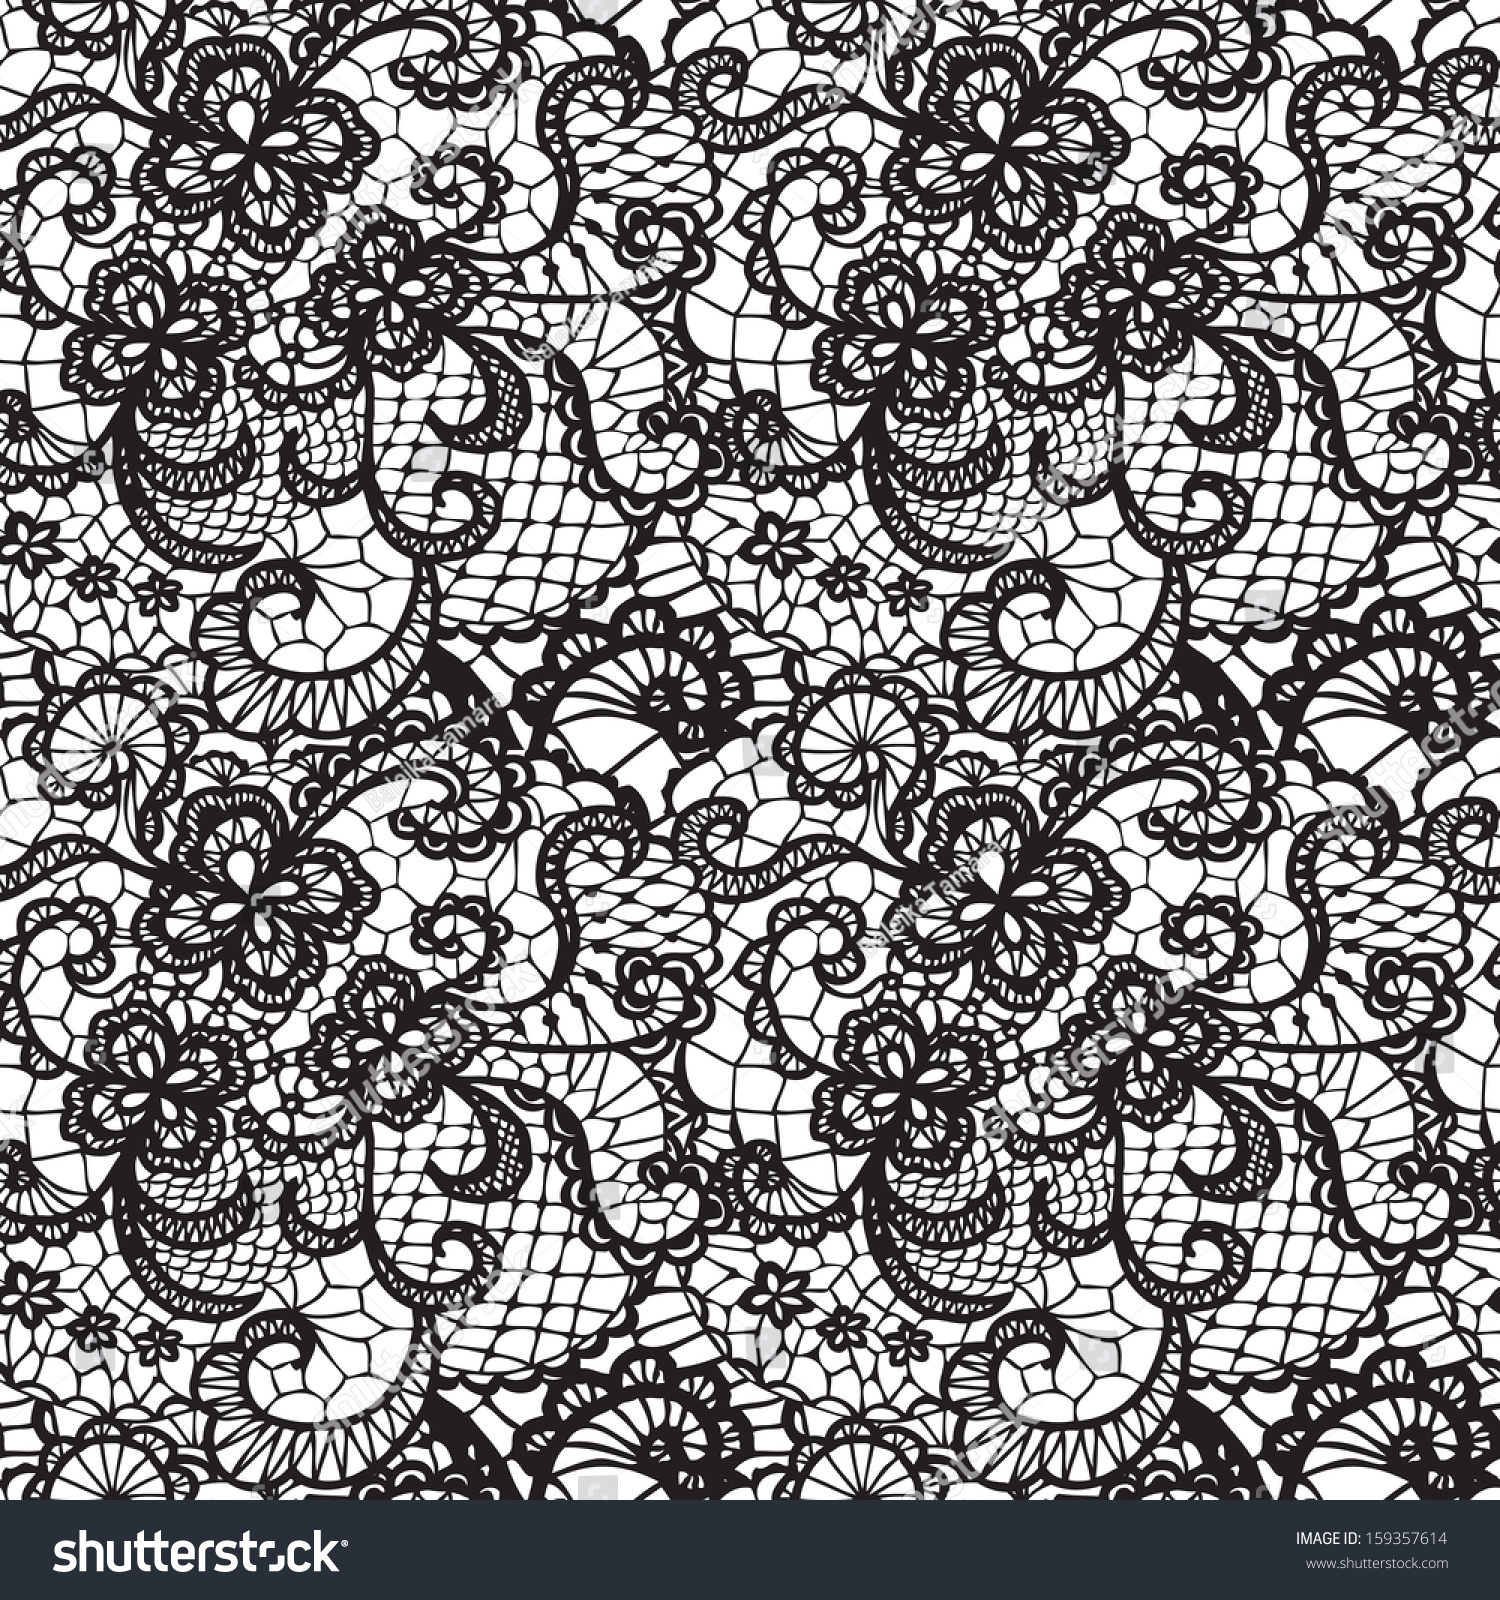 Lace Black Seamless Pattern Flowers On Stock Vector 159357614 ...